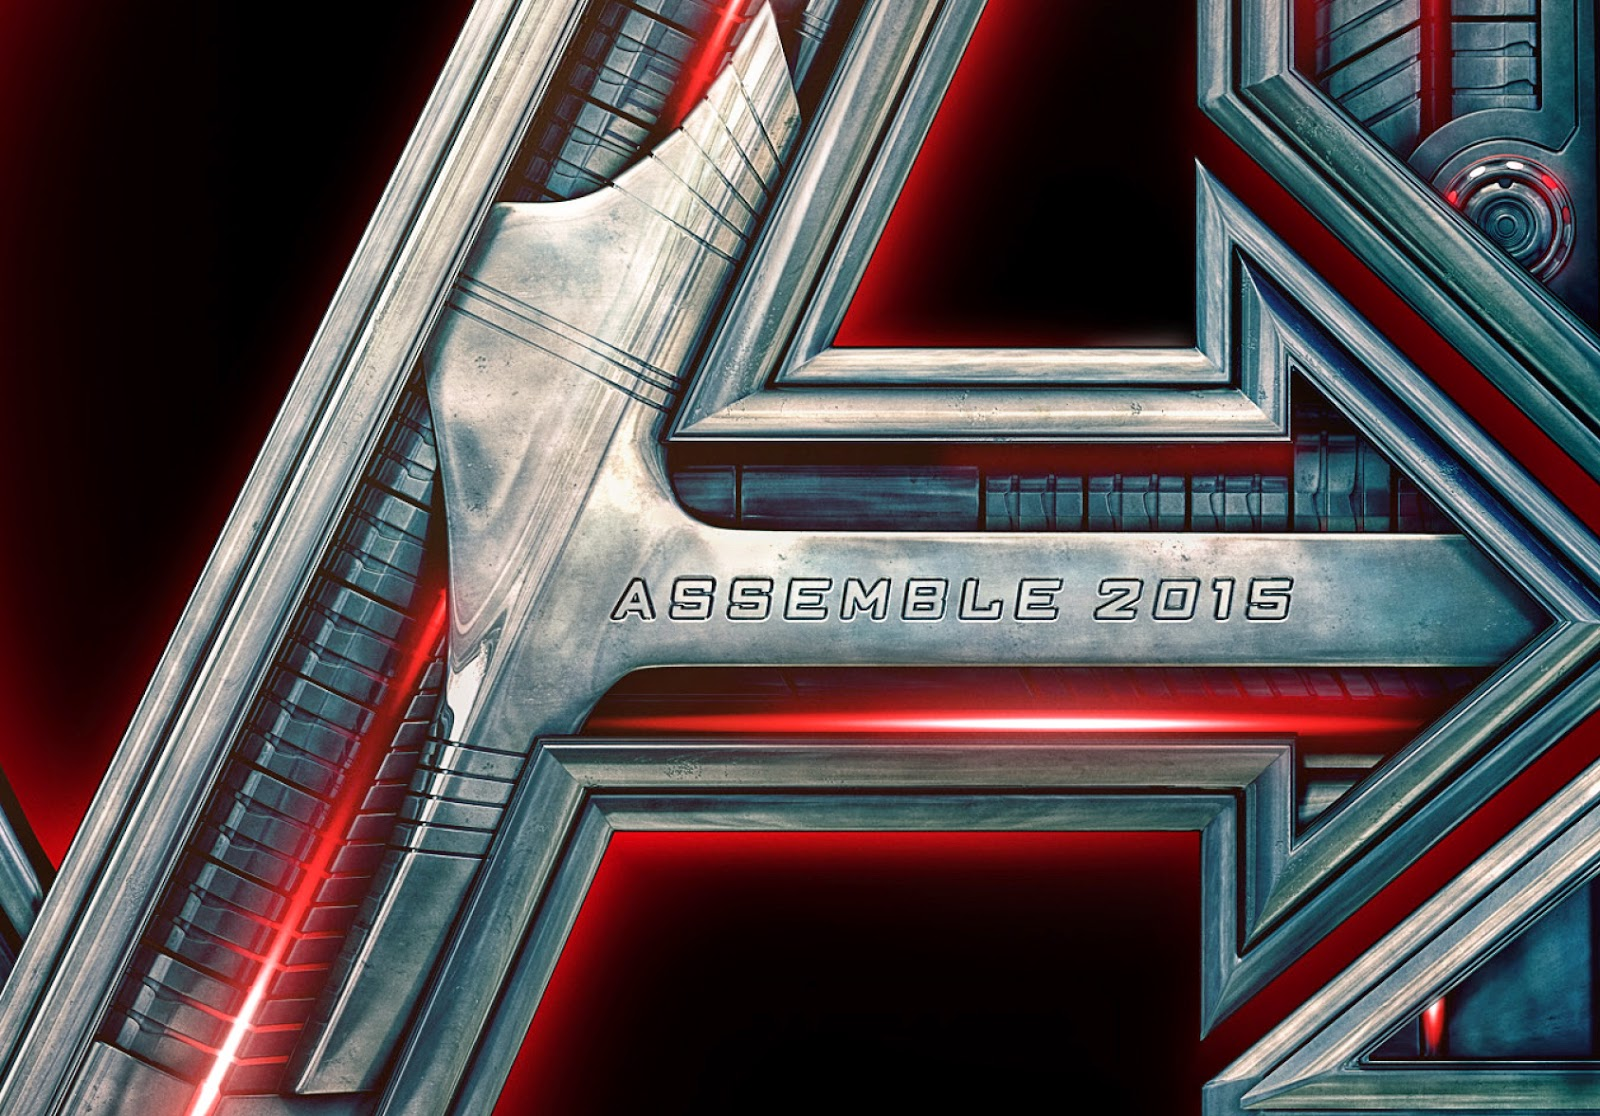 Avengers: Age of Ultron - First Trailer & Poster